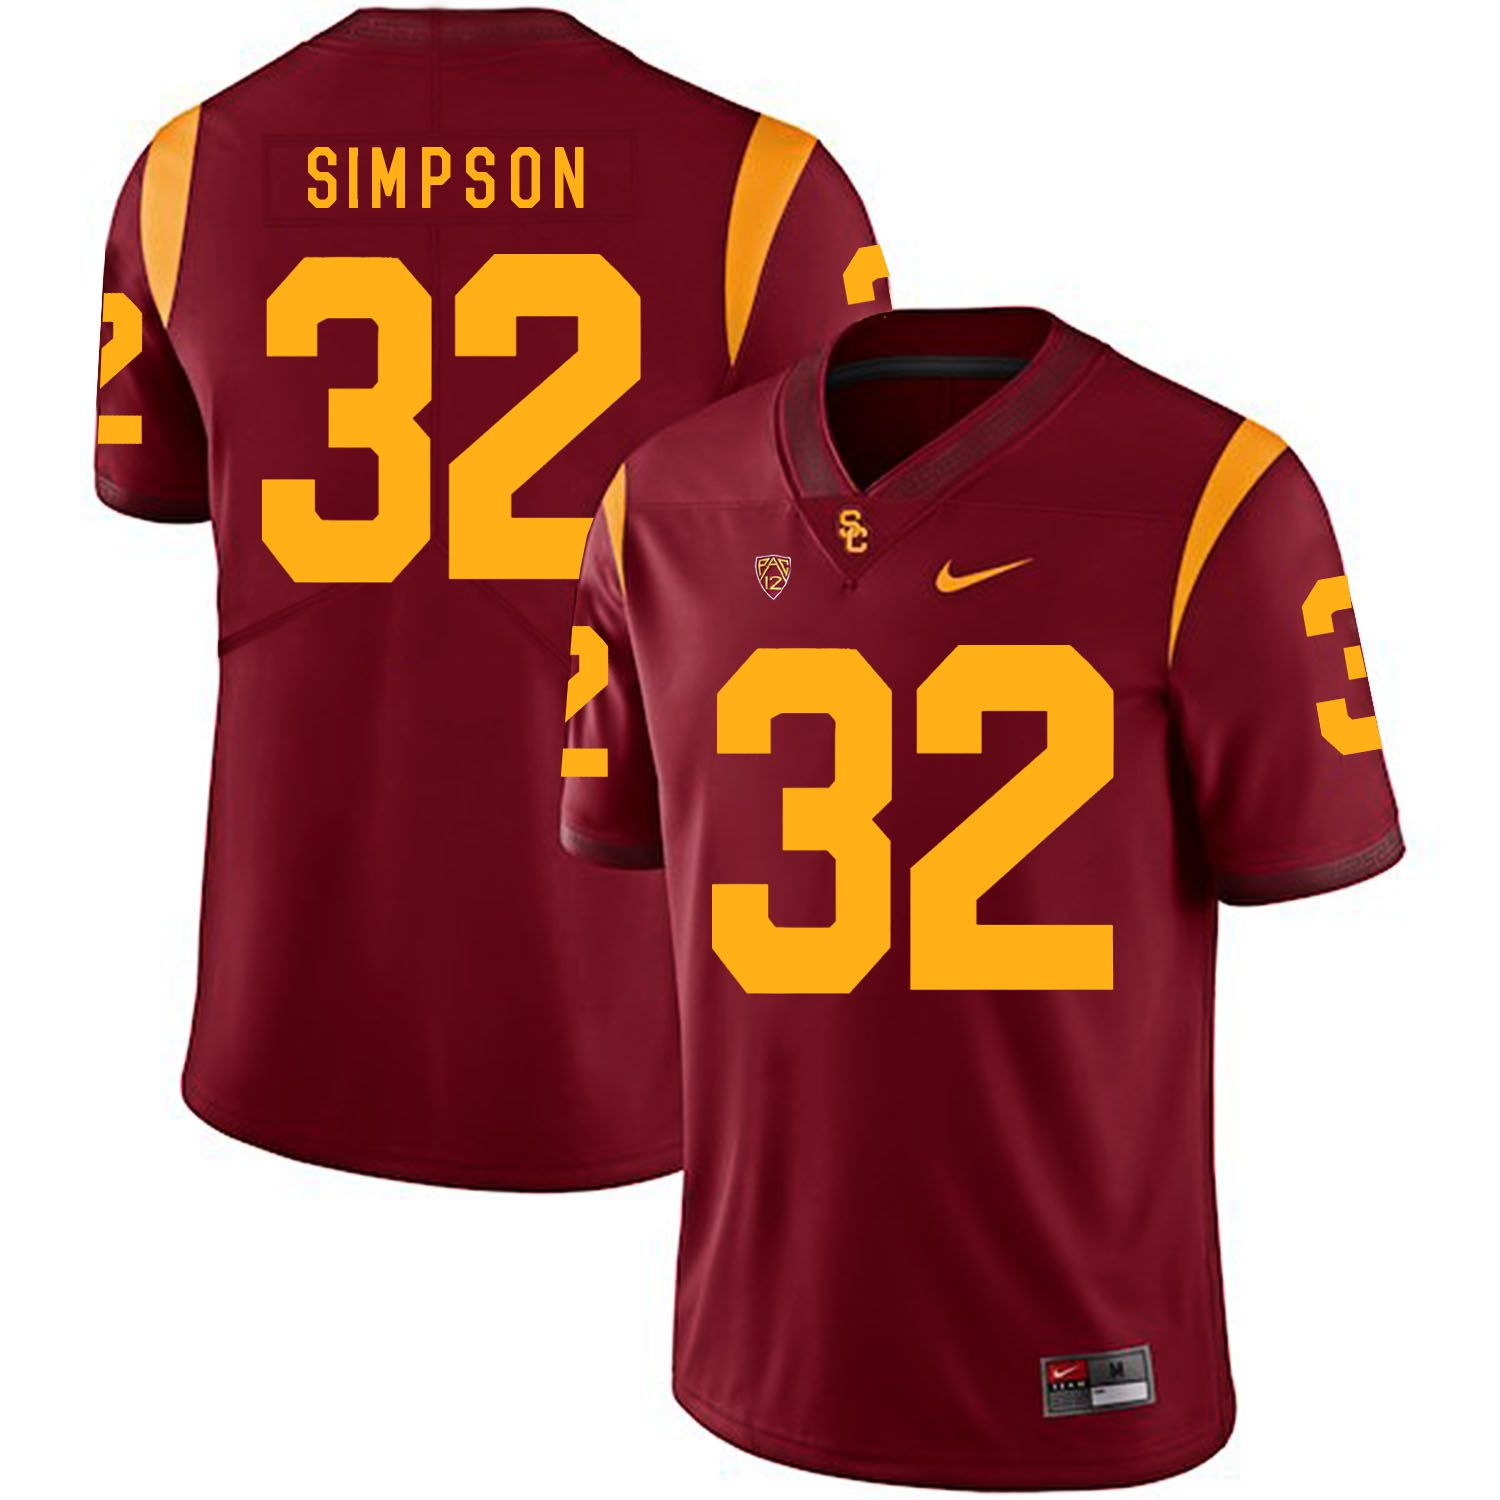 Men USC Trojans 32 Simpson Red Customized NCAA Jerseys